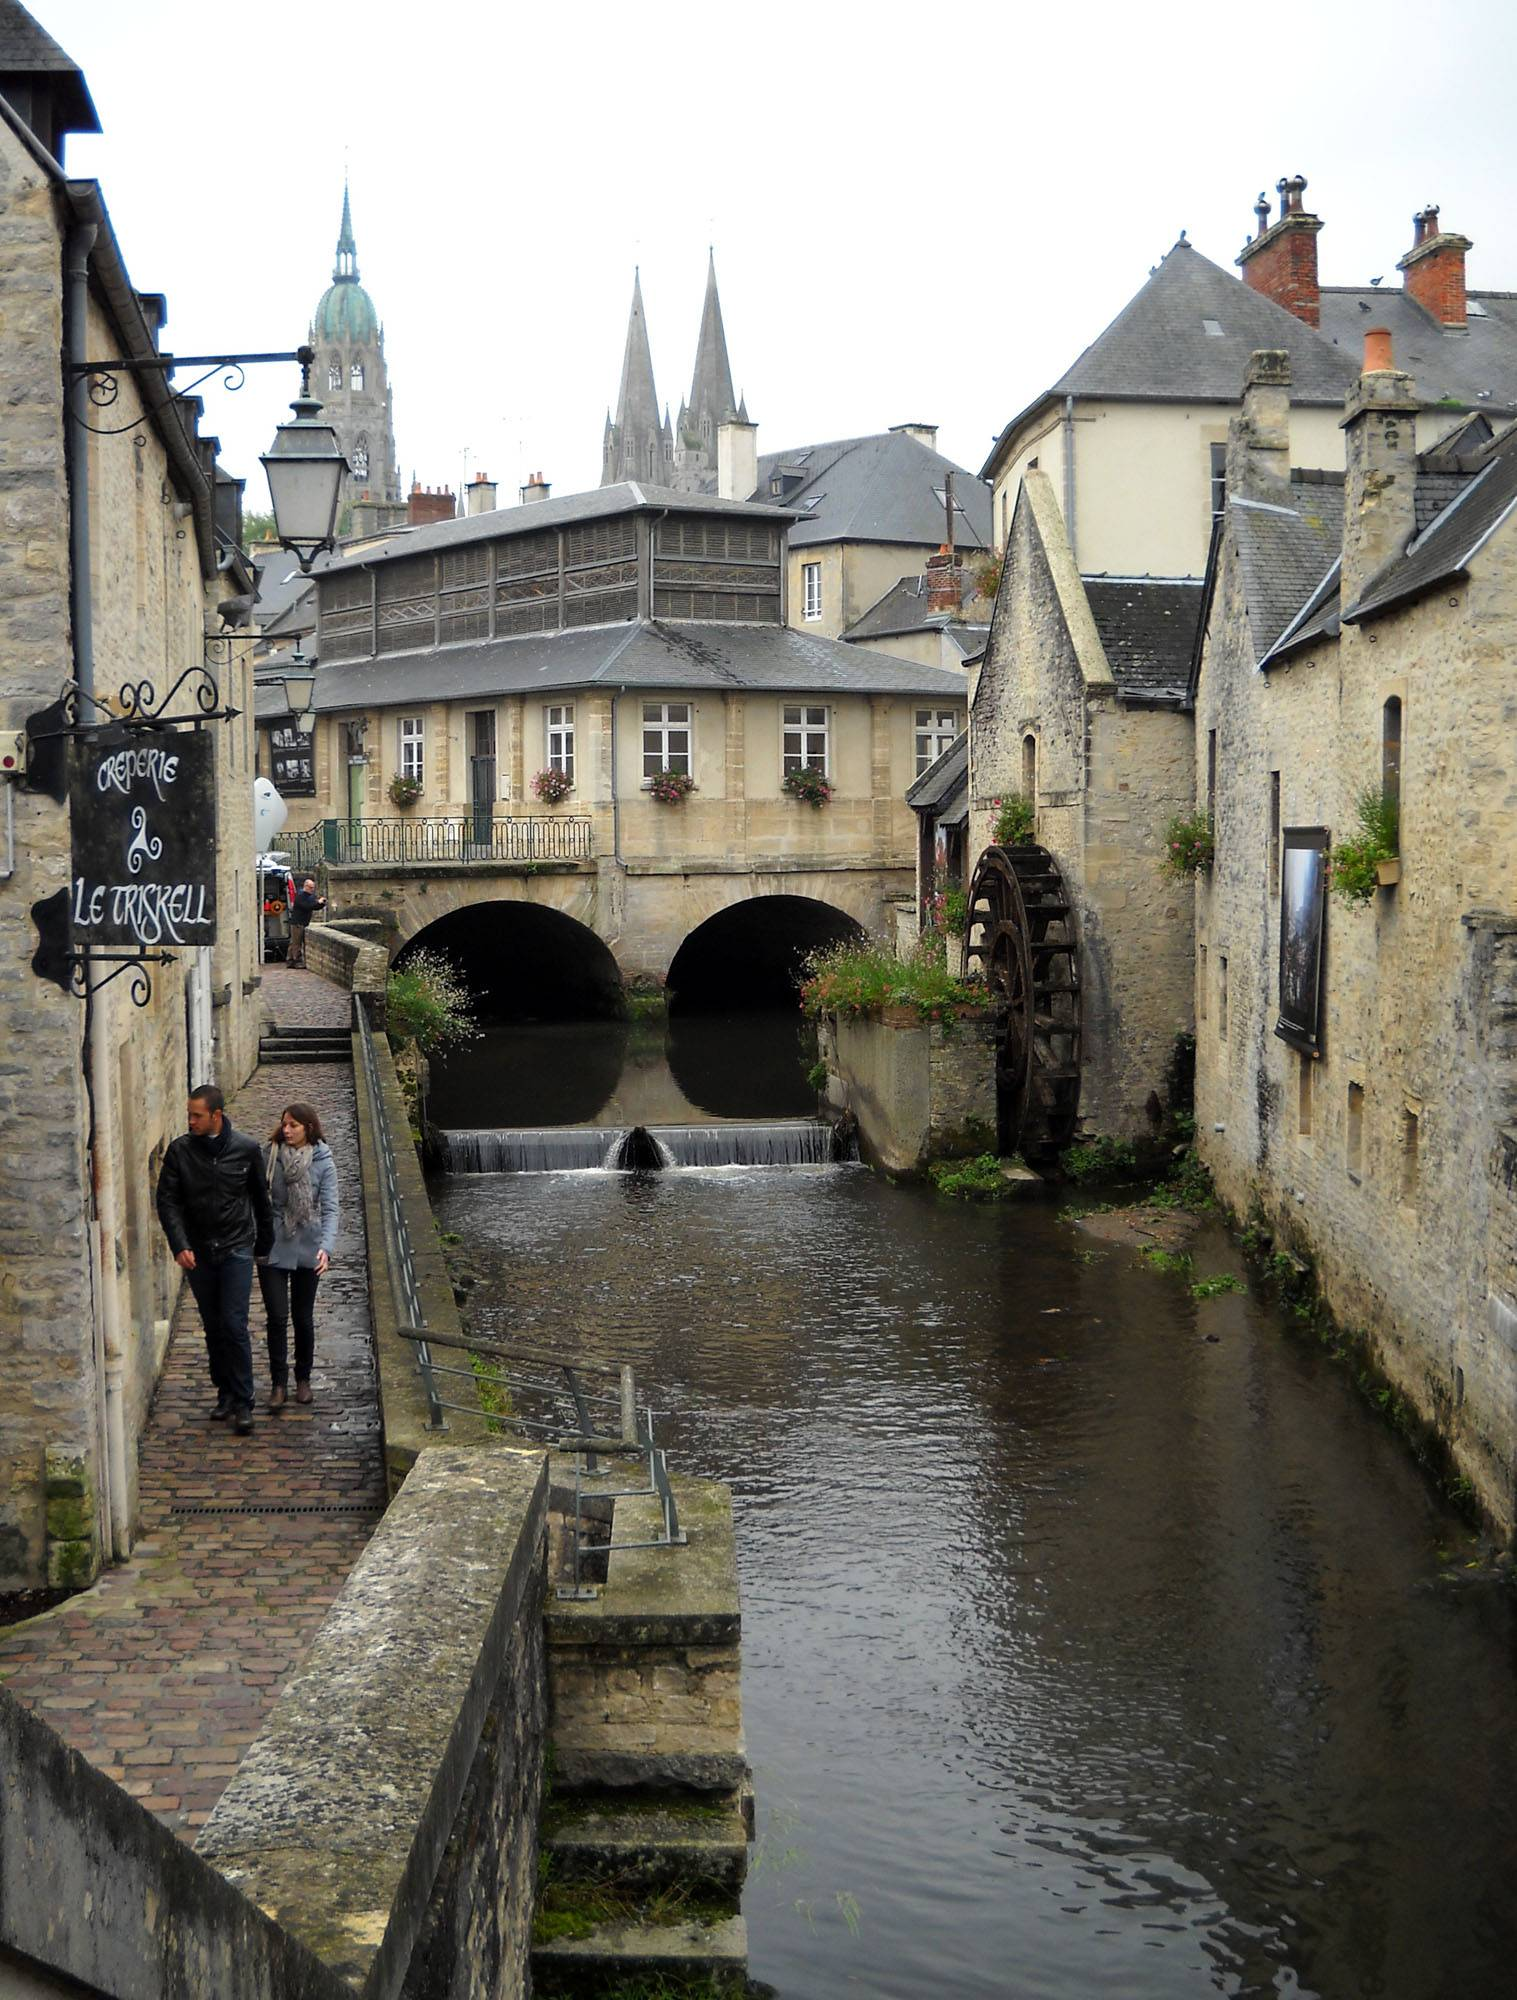 People walk along the Aure River in Bayeux. The old town center boasts cobblestone streets, upscale shops, small eateries and picturesque mills along the narrow river.